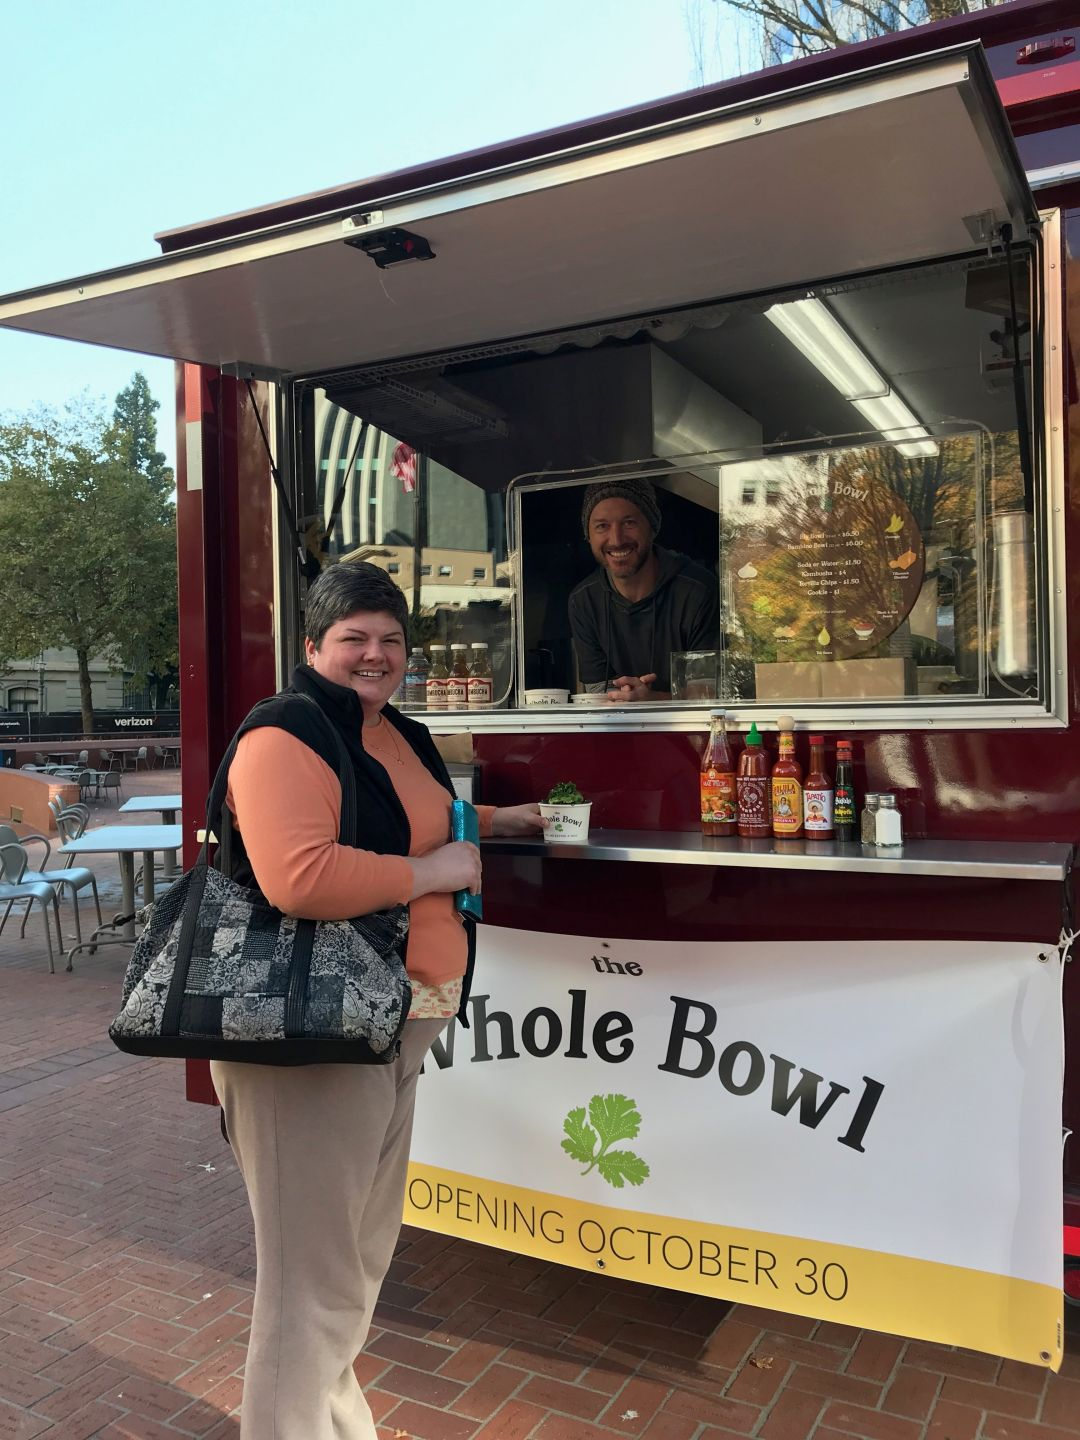 Whole bowl at pioneer courthouse square xrivsb